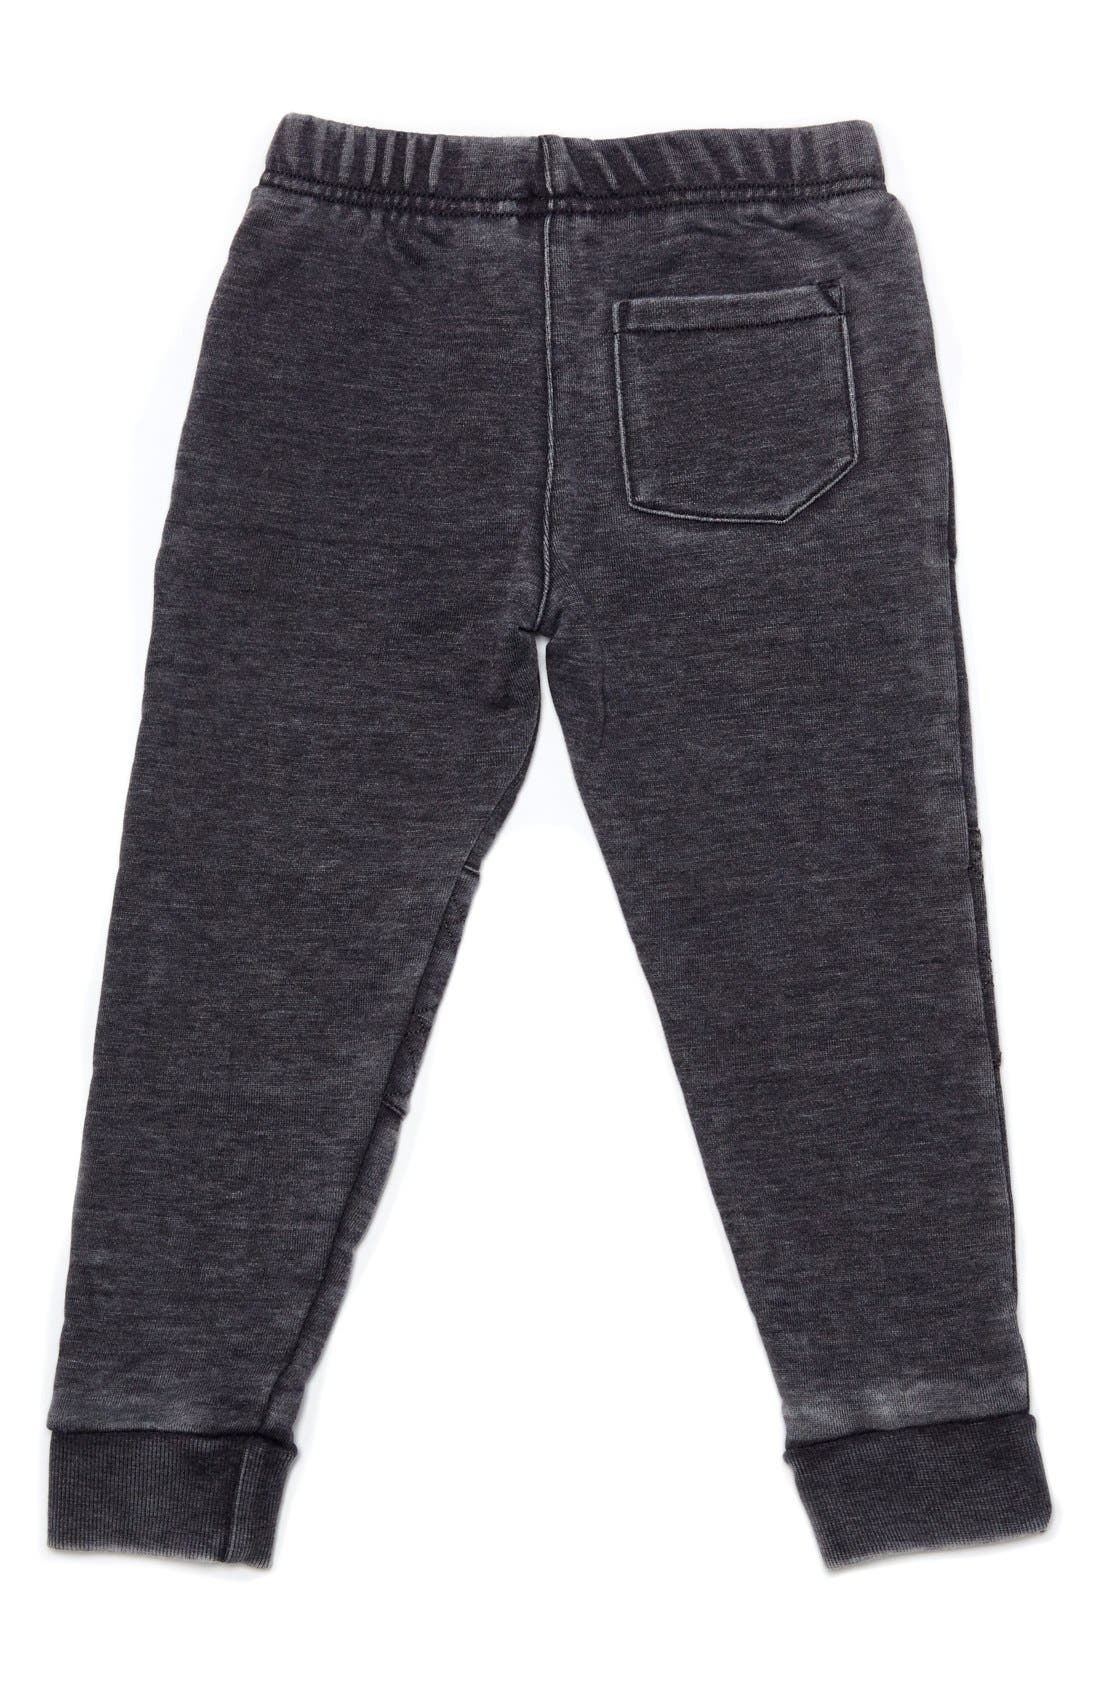 Alternate Image 2  - Kardashian Kids Quilted Jogger Pants (Toddler Boys & Little Boys)